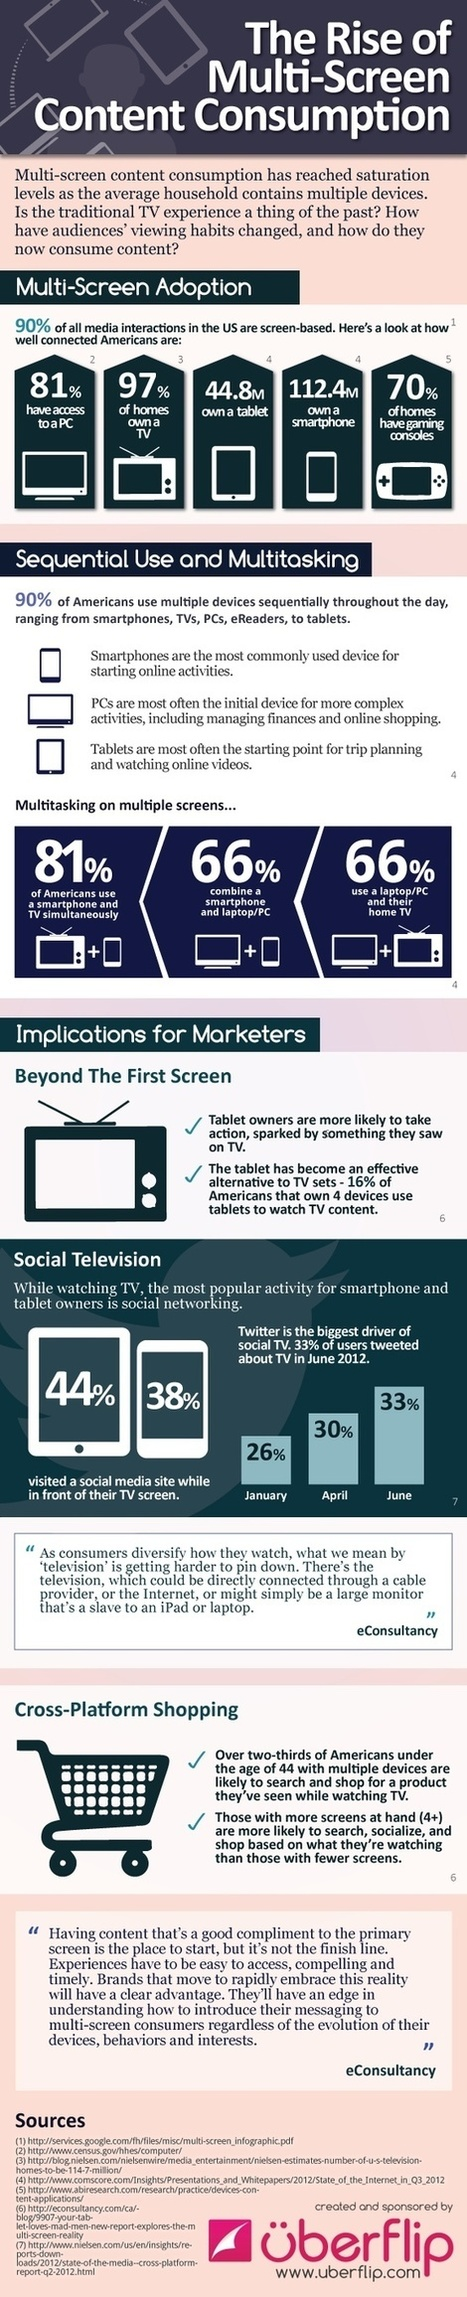 The Rise of Multi-Screen Content Consumption | Smart Phone & Tablets | Scoop.it